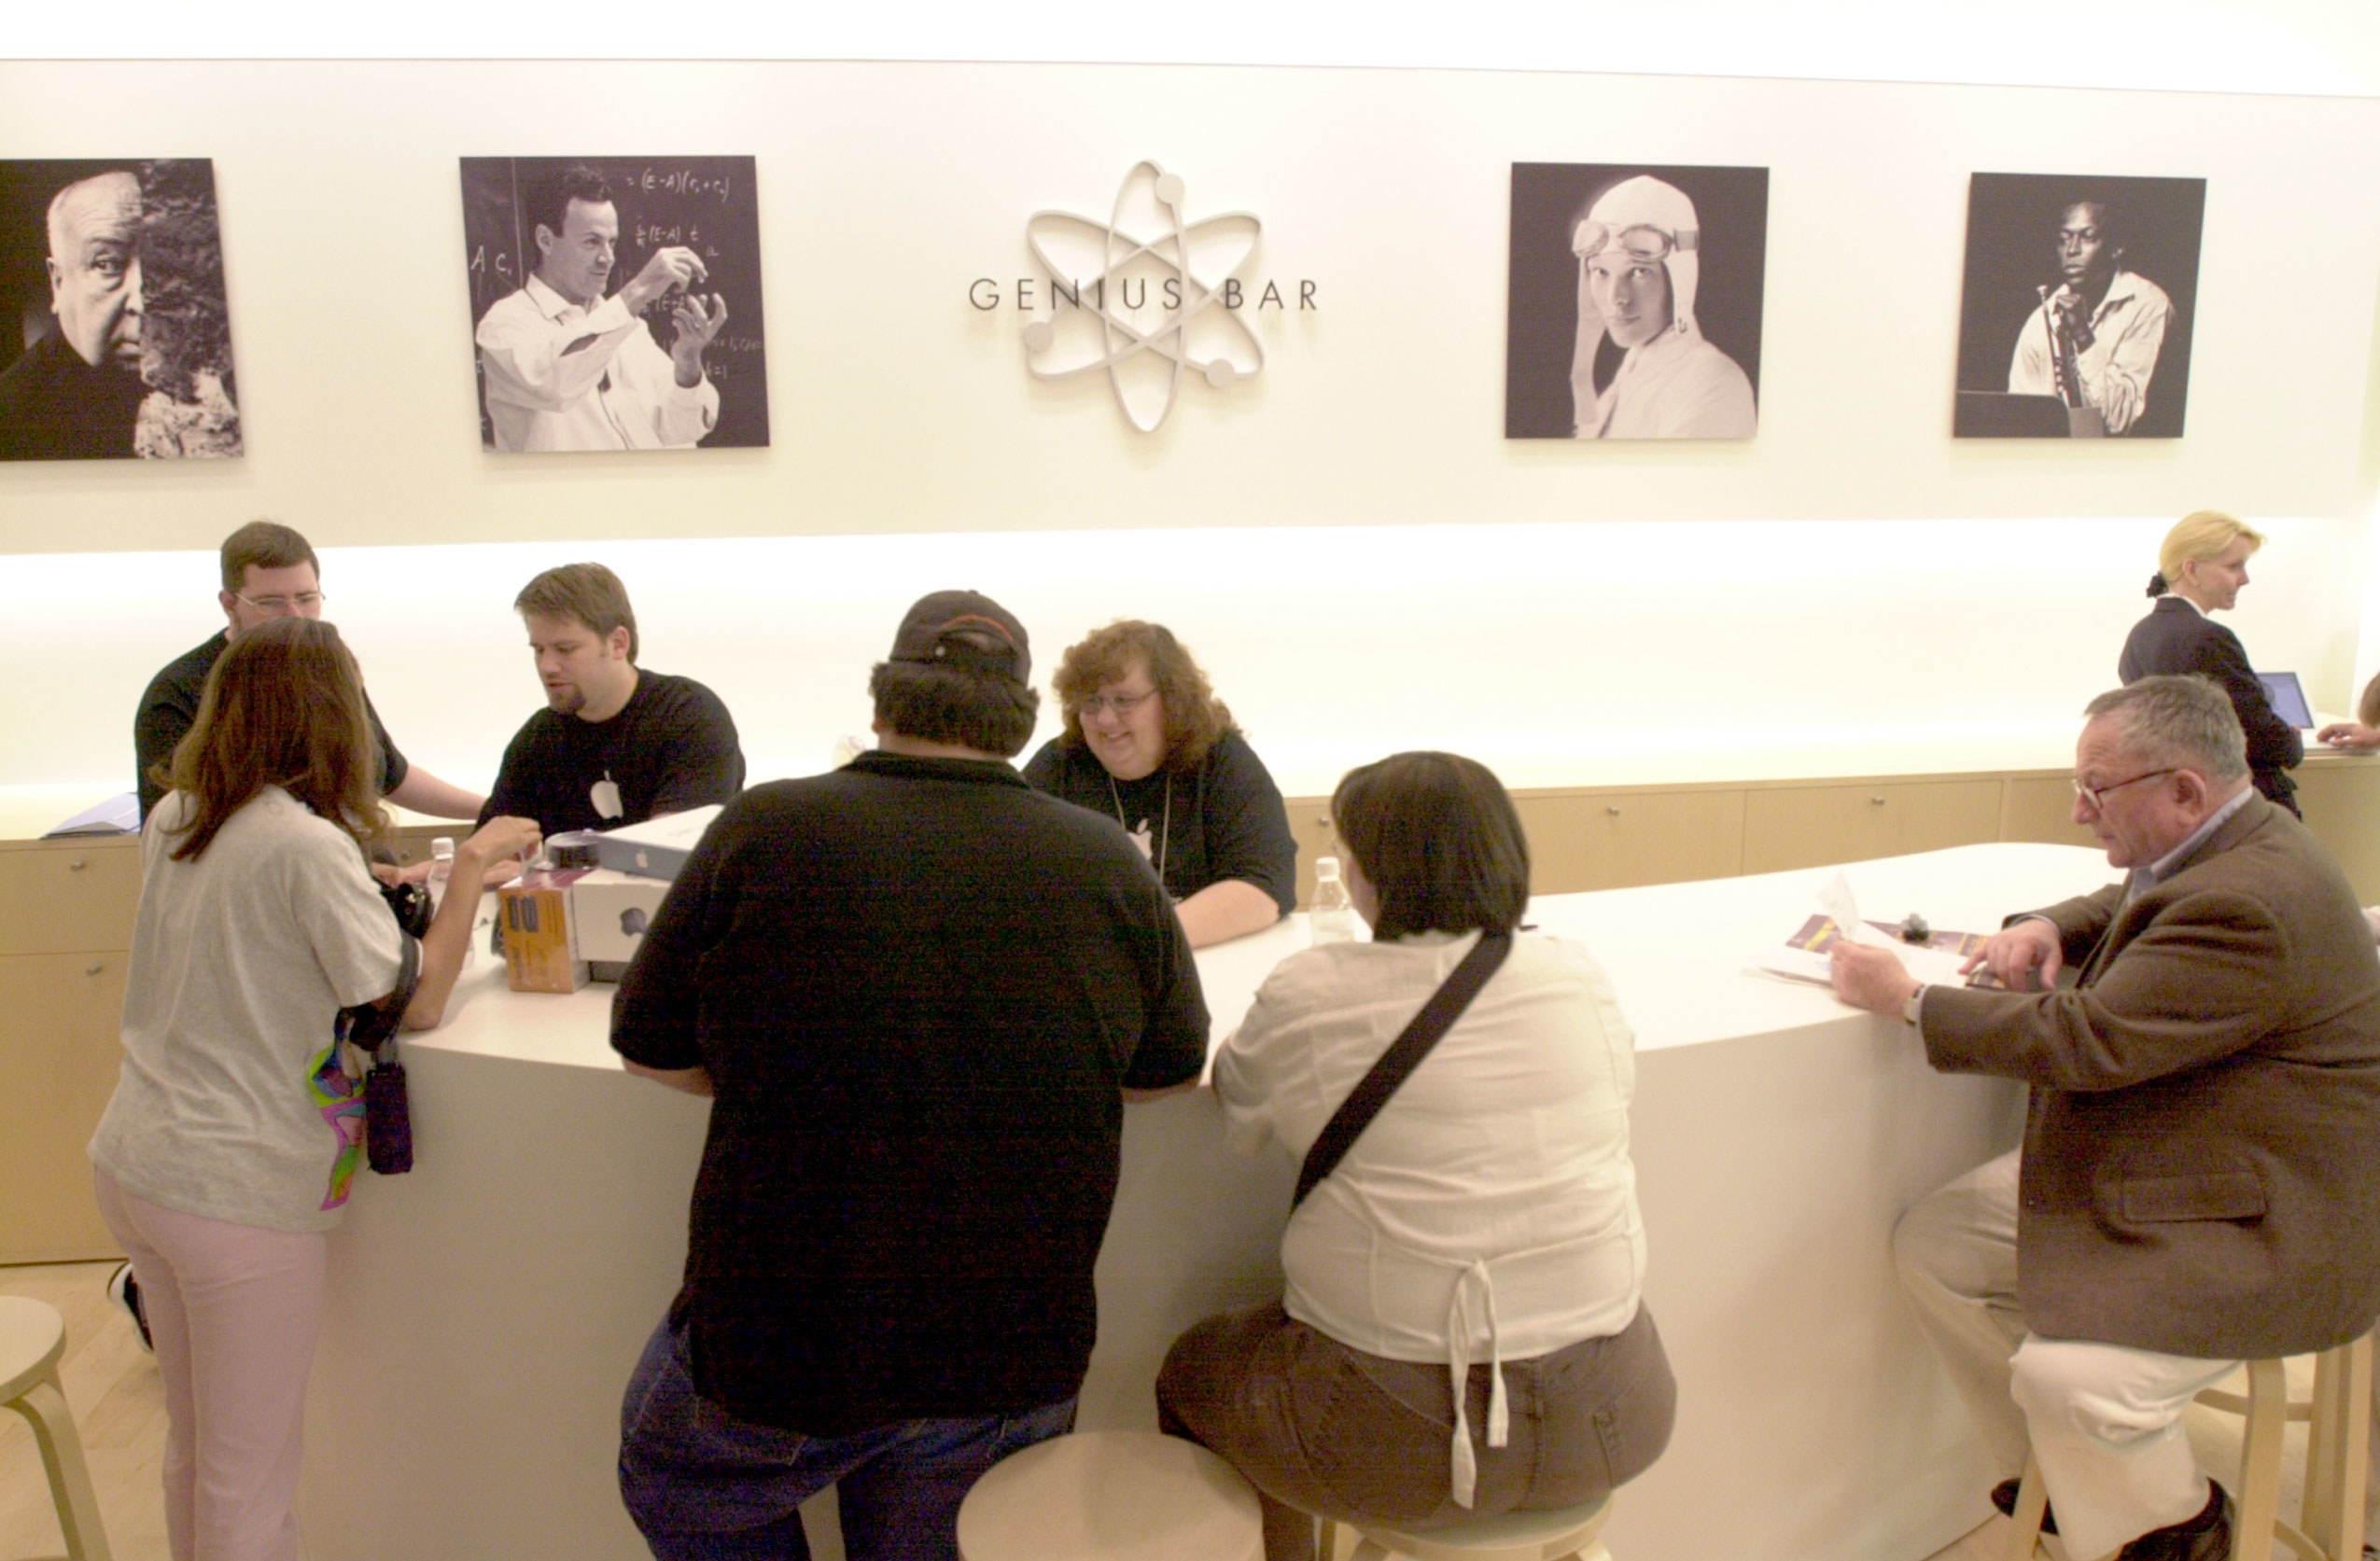 Photo of people sitting at a Genius Bar